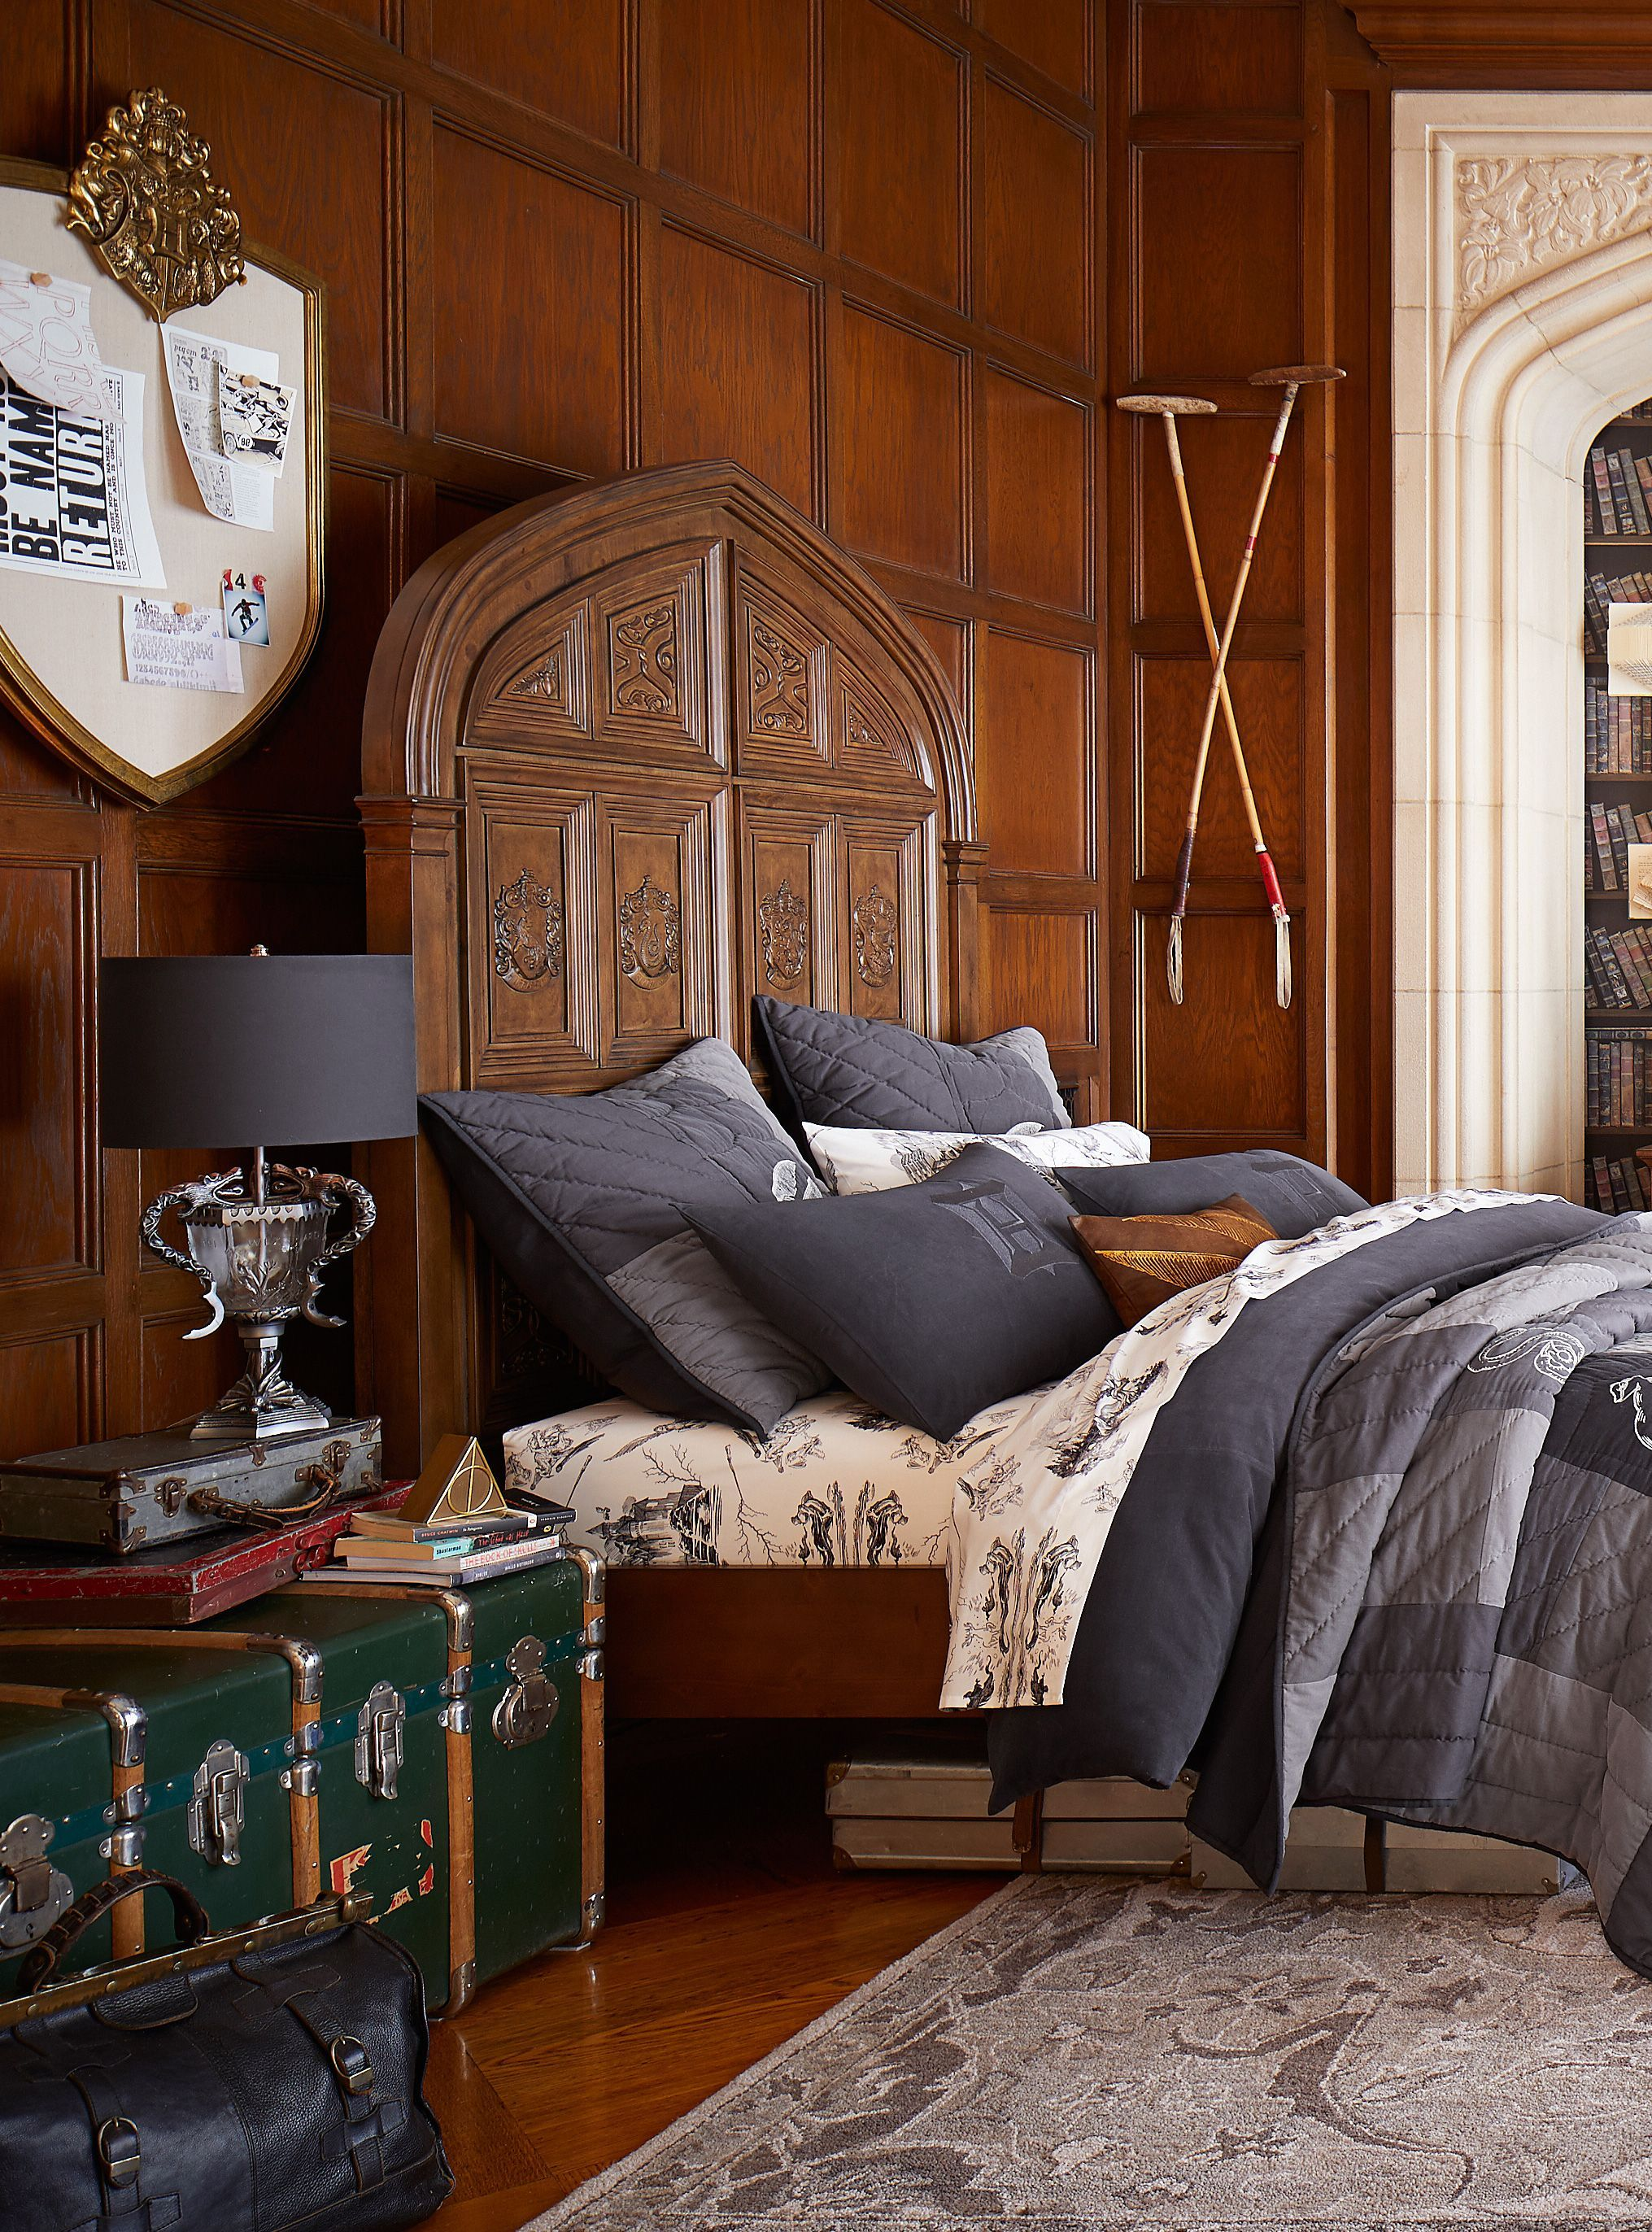 Harry Potter Home Decor Just Landed At Pottery Barn Harry Potter